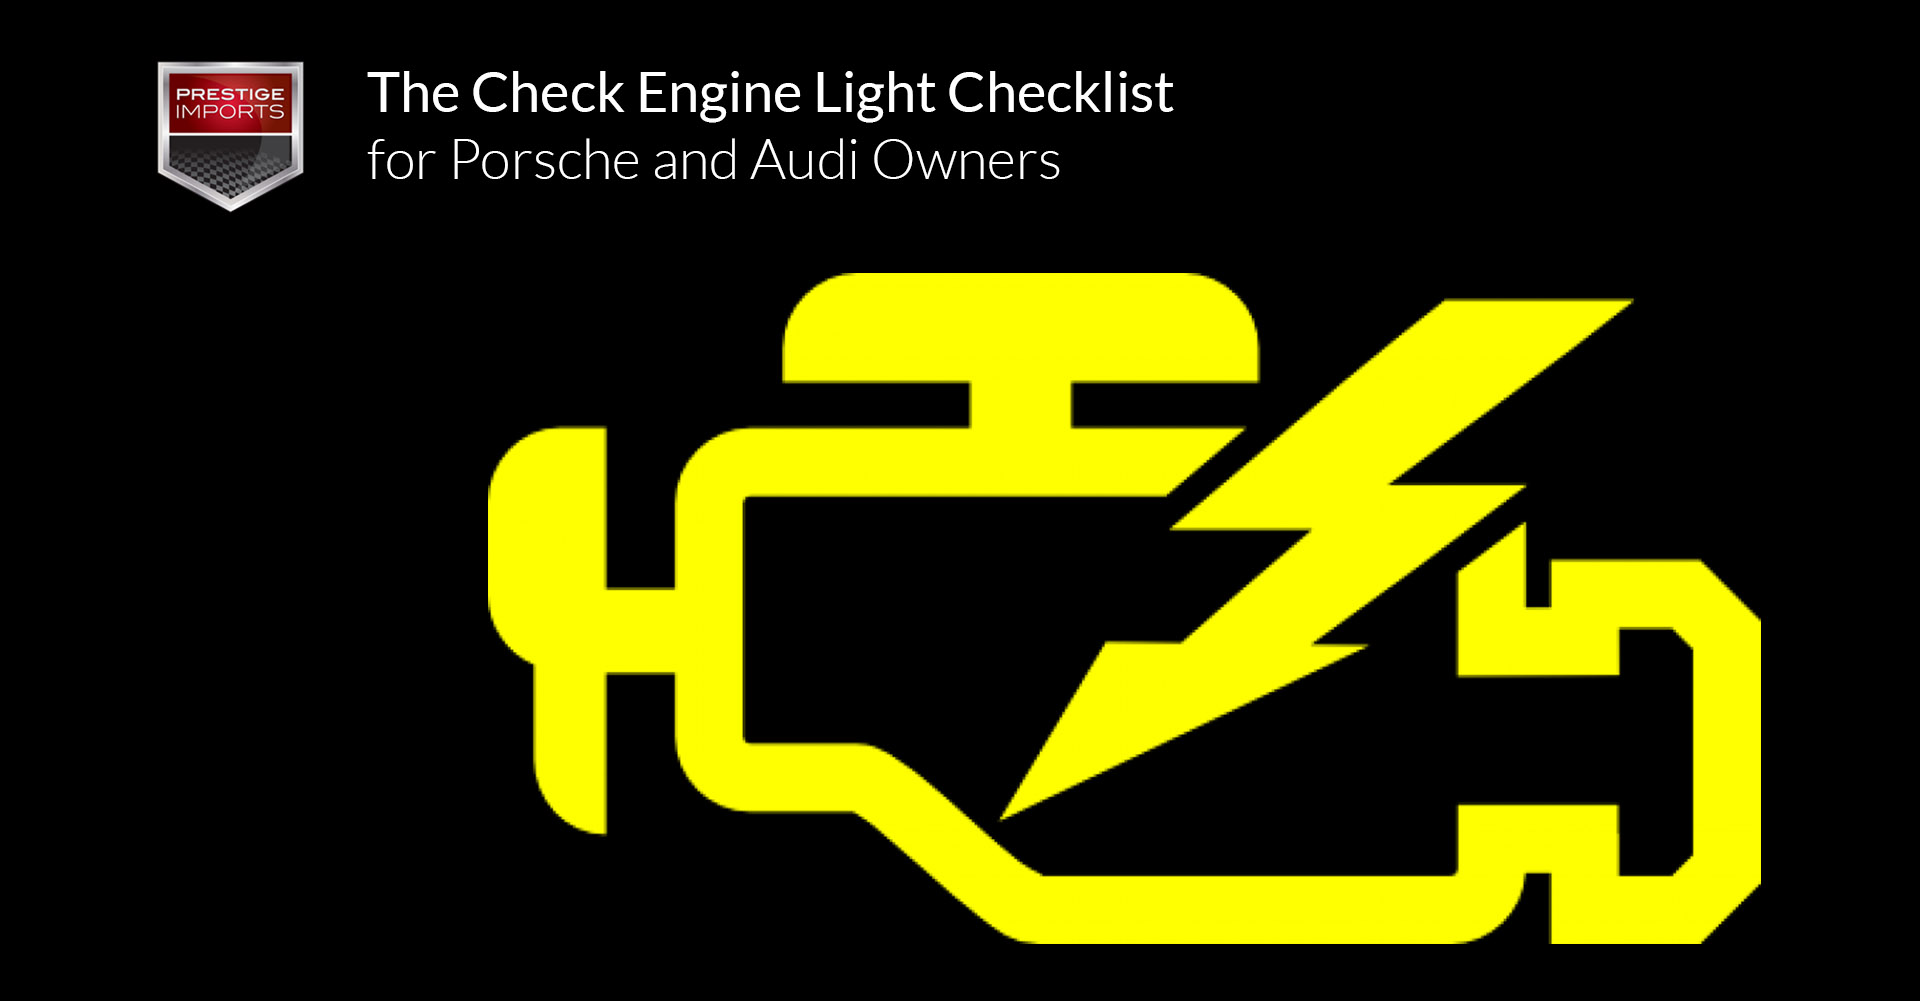 The Check Engine Light Checklist For Porsche And Audi Owners